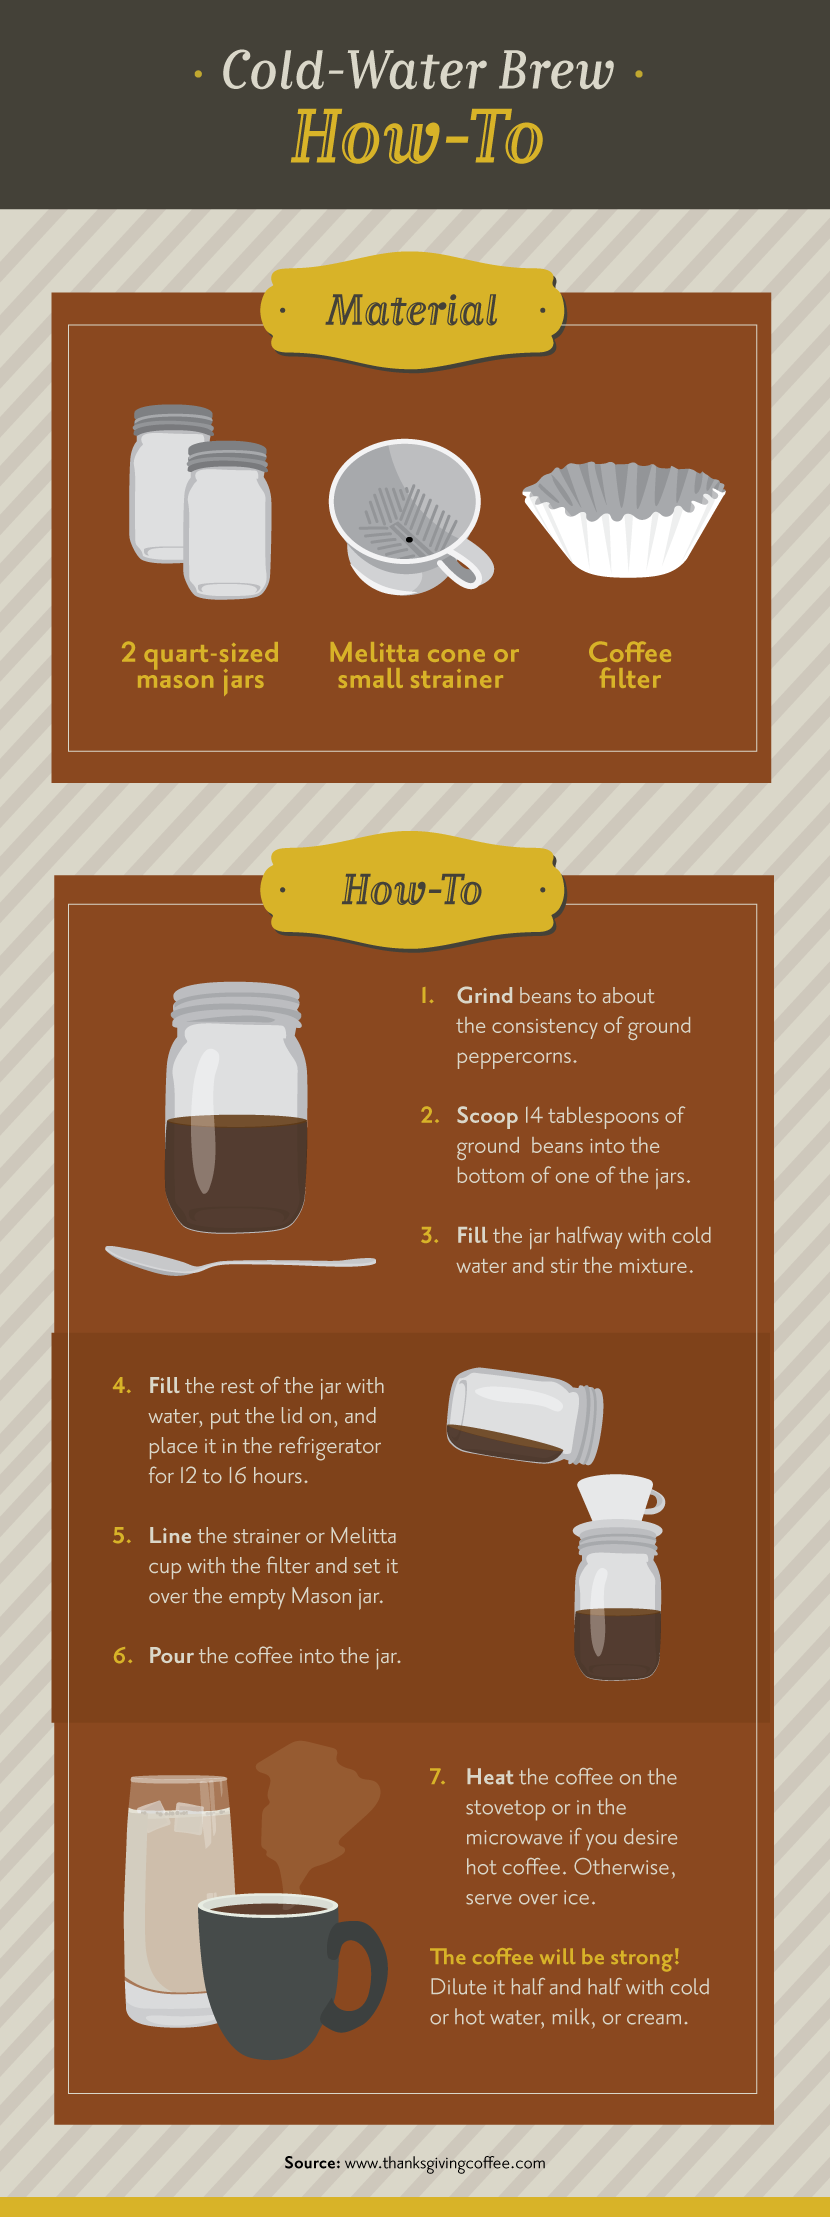 Cold Water Brew How to - Four Ways to Brew a Perfect Cup of Coffee